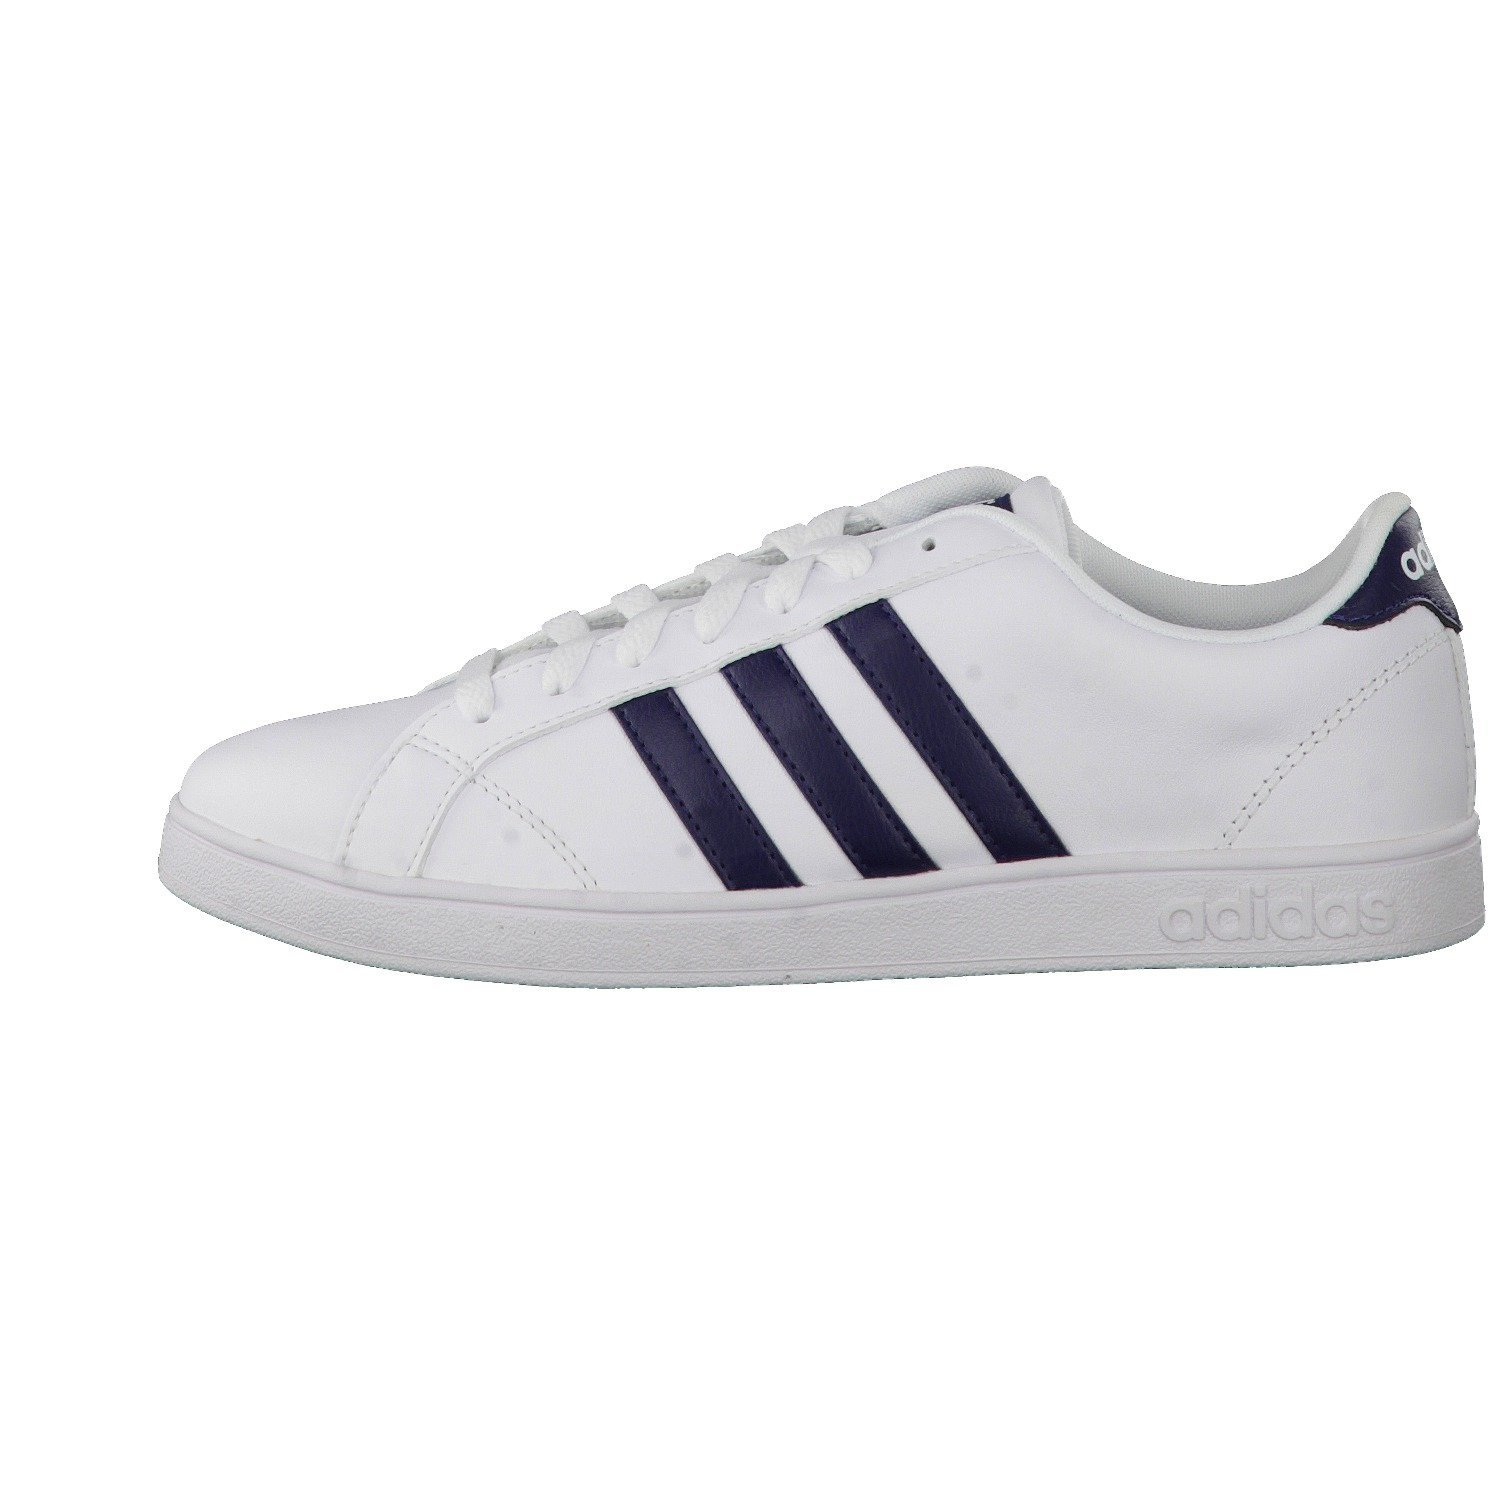 adidas originals superstar neo